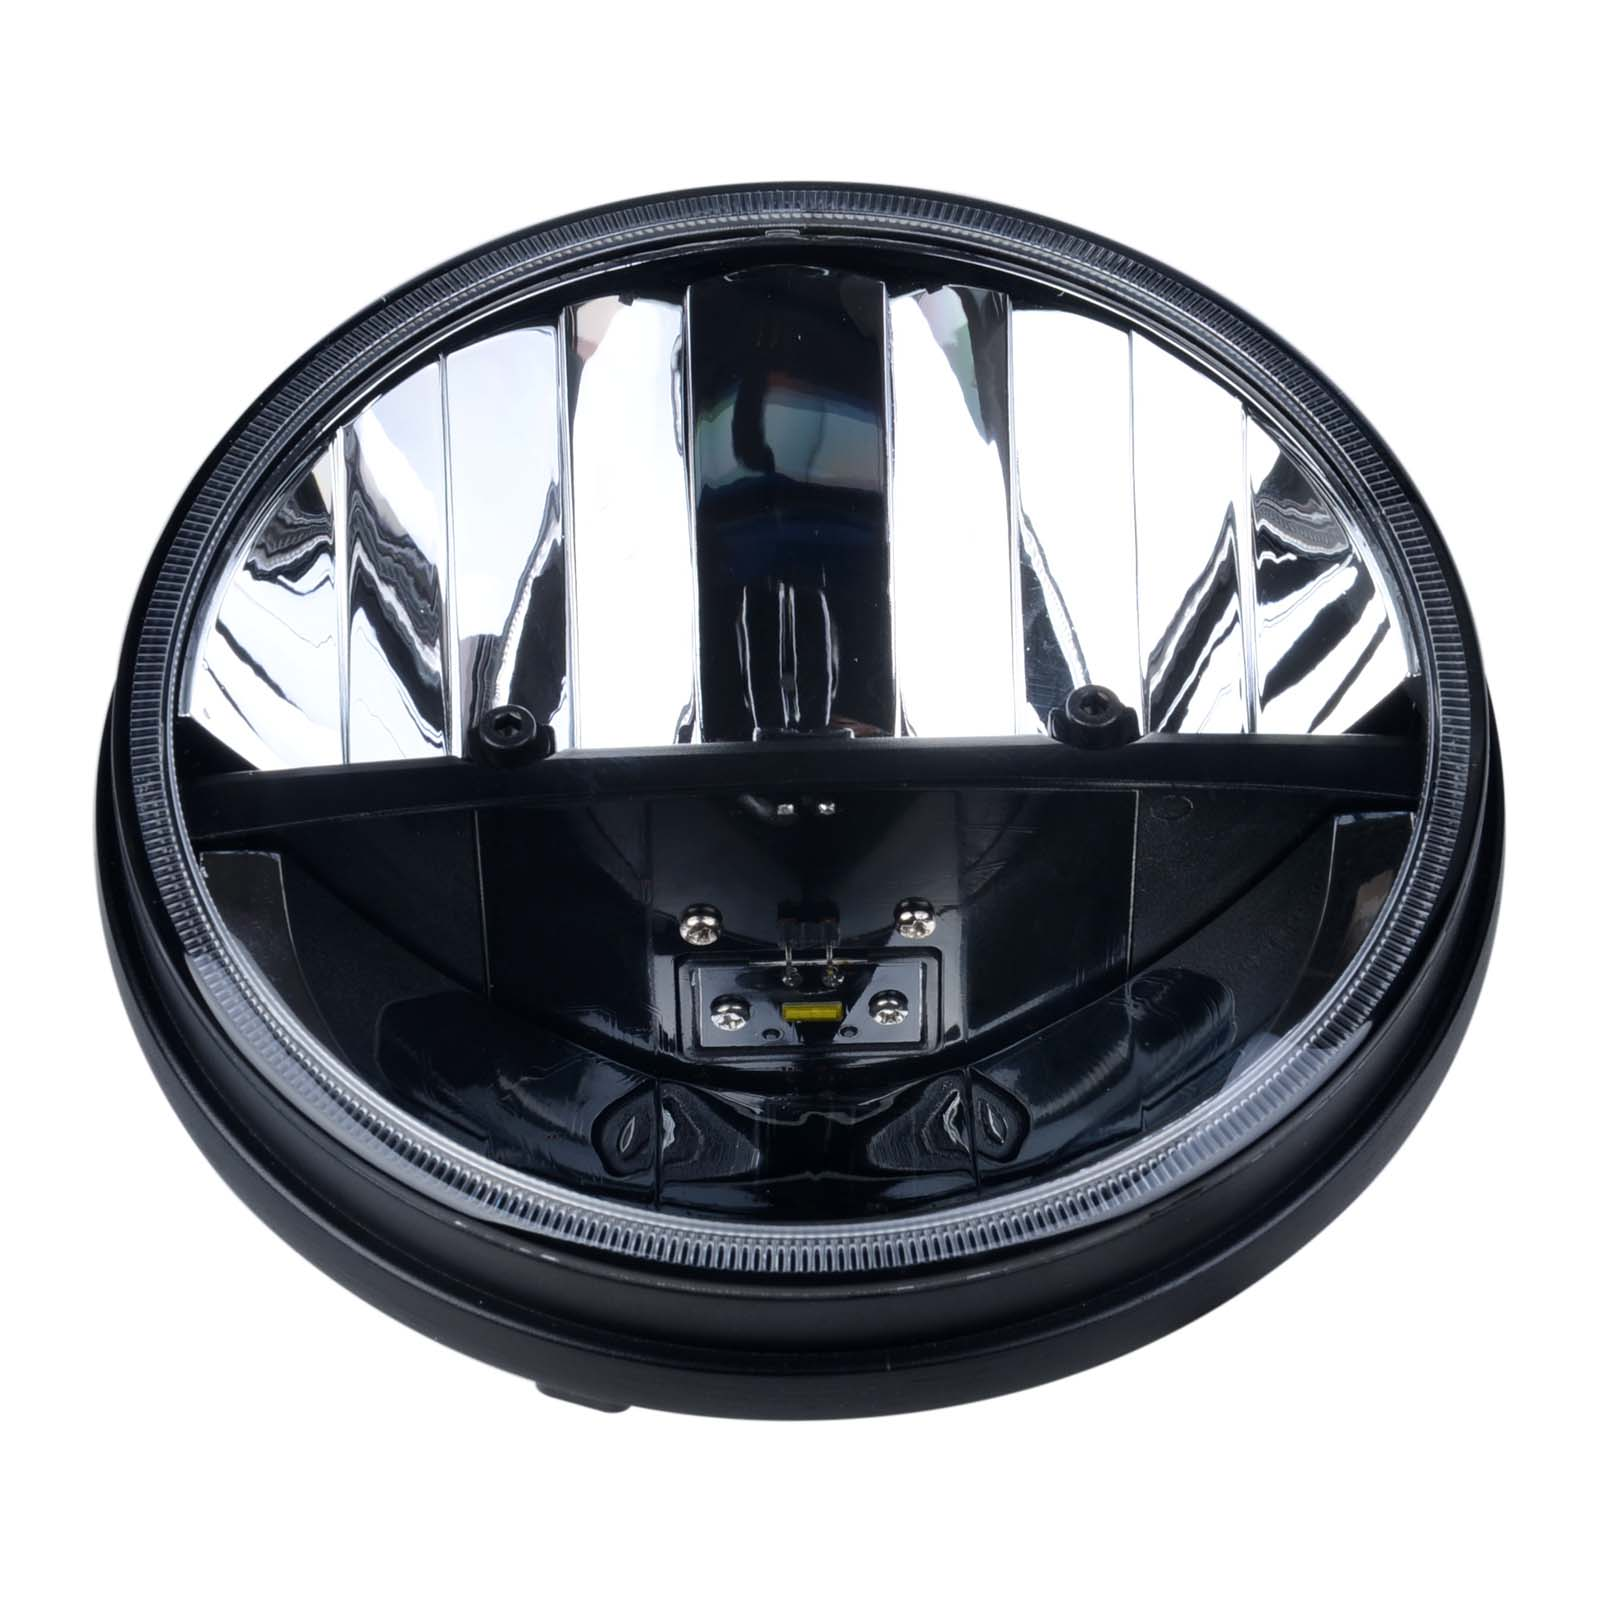 7 inch 36W CREE Round High Beam Low Beam LED Headlight For Jeep Wrangler  sc 1 st  kawell & 7 inch 36W CREE Round High Beam Low Beam LED Headlight For Jeep ...